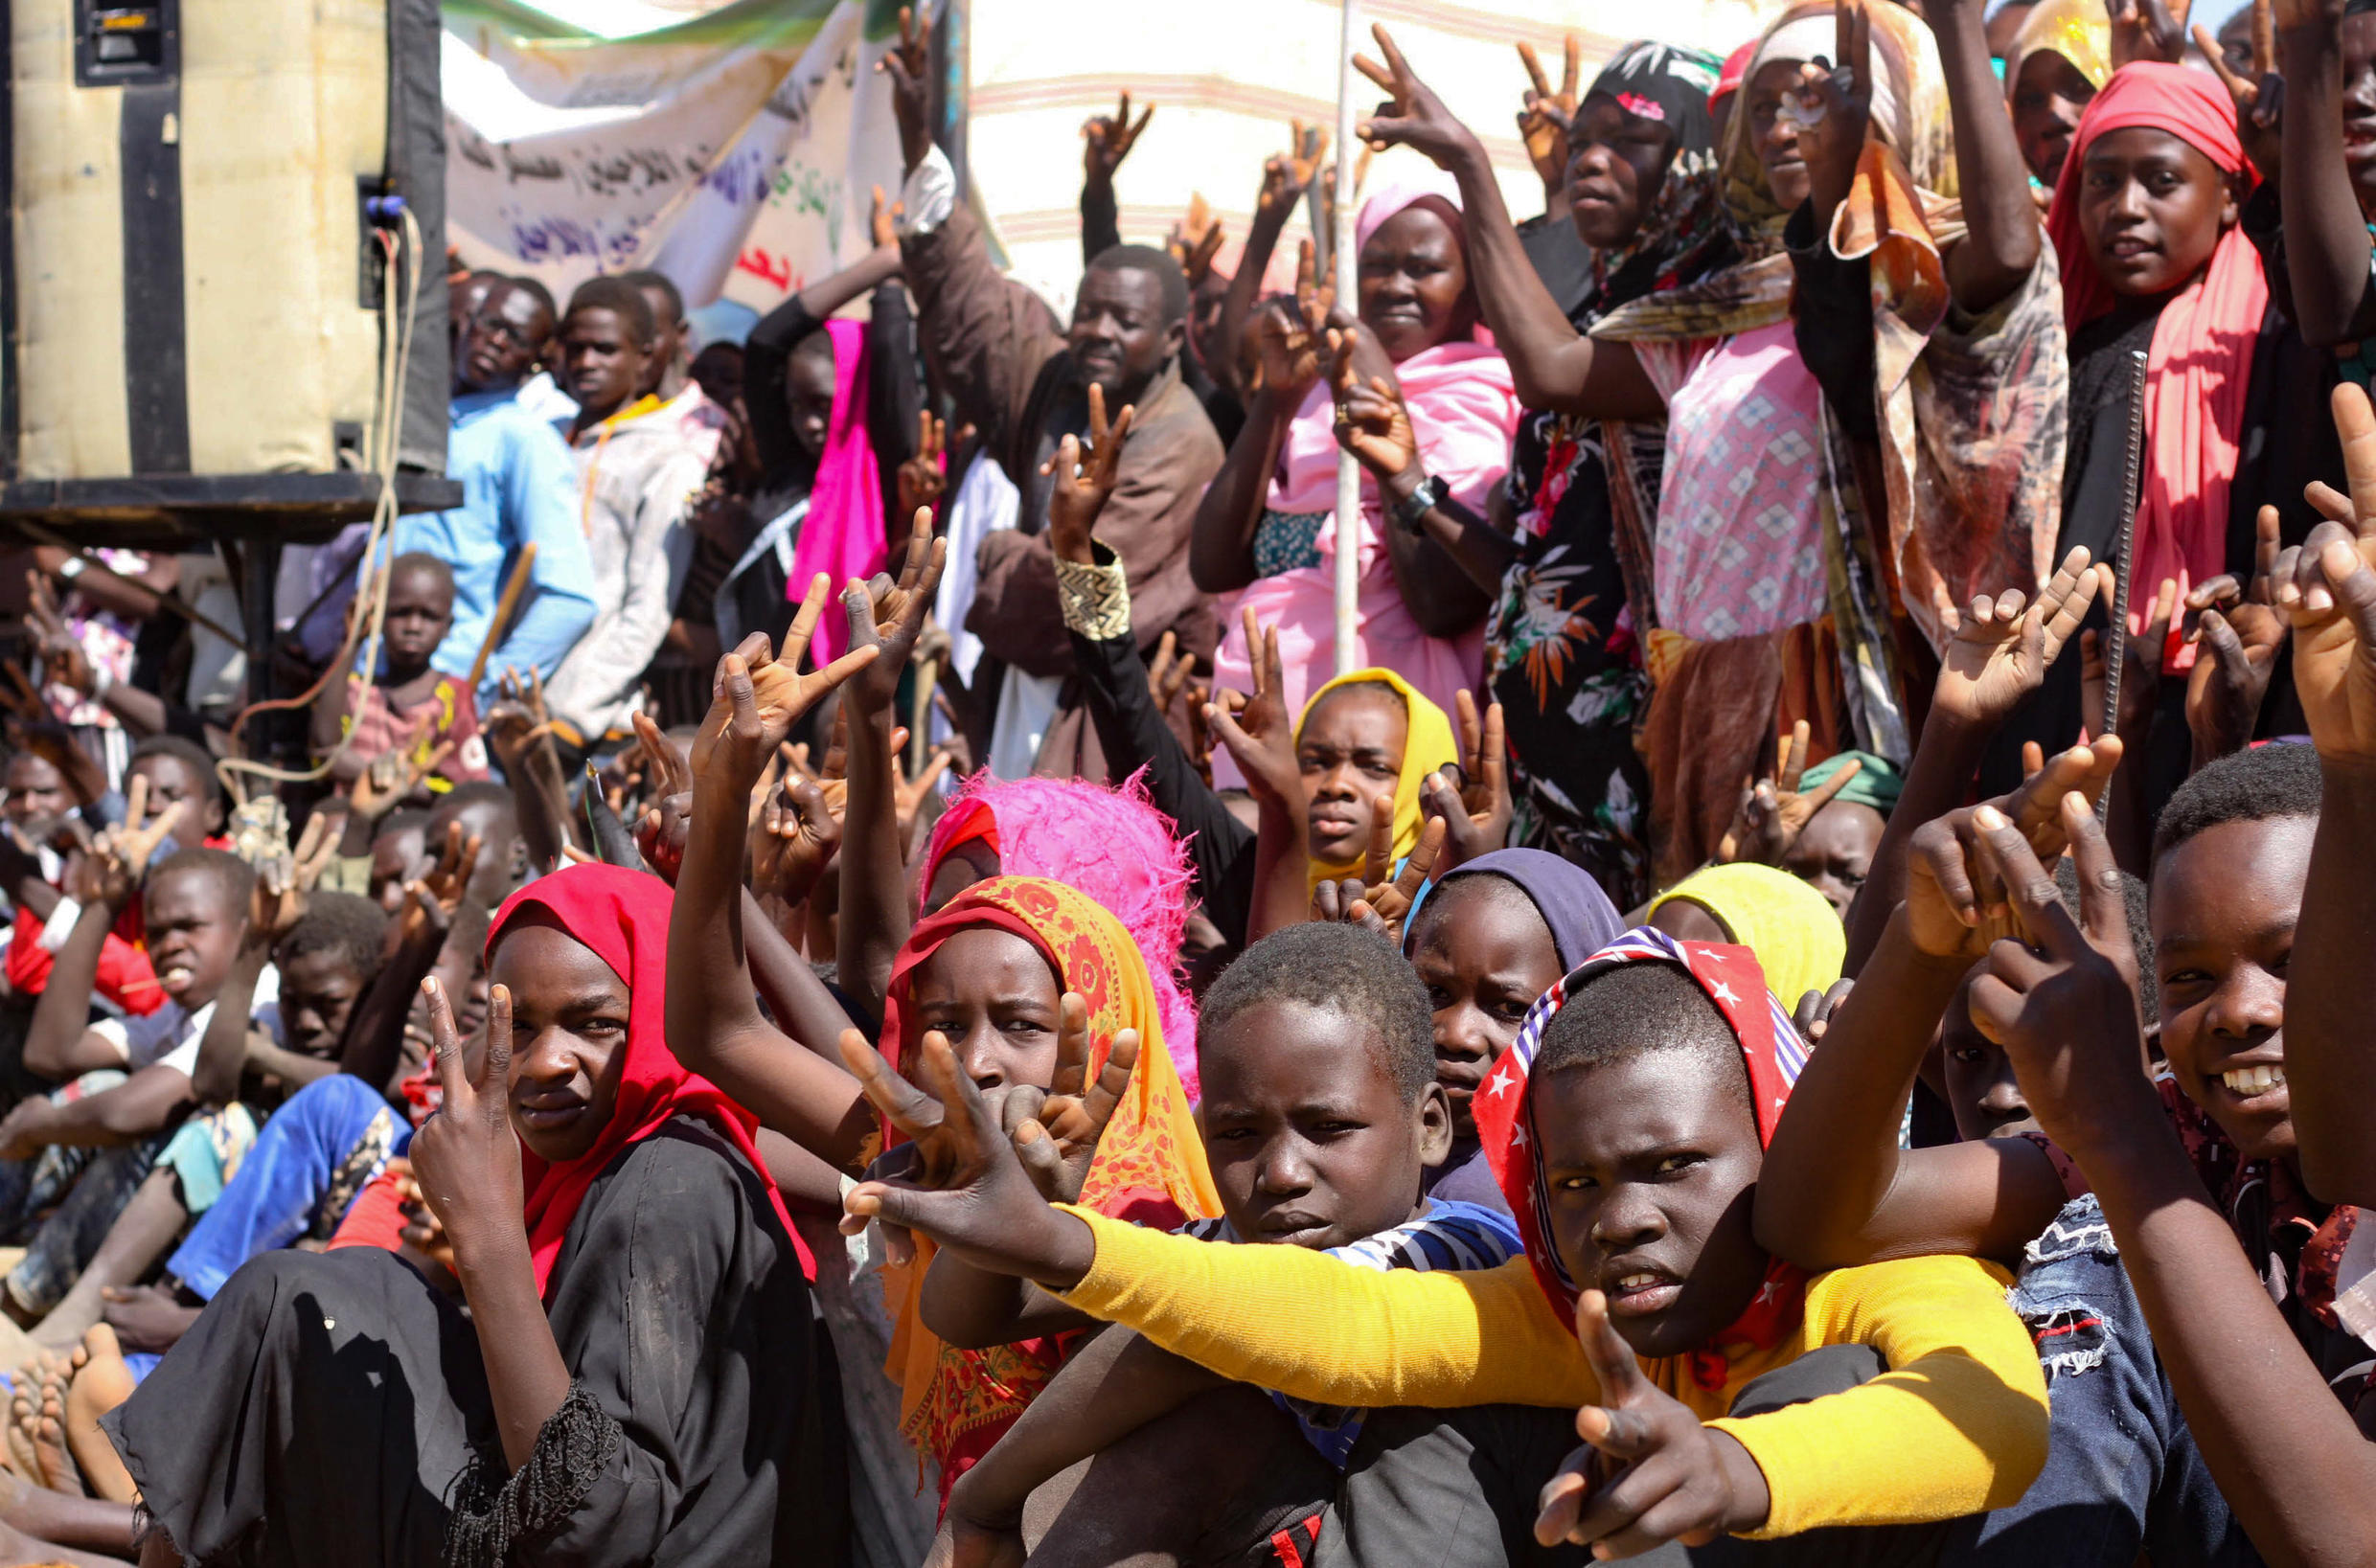 Internally displaced people in South Darfur protesting against the end of the joint United Nations/African Union peacekeeping mission.